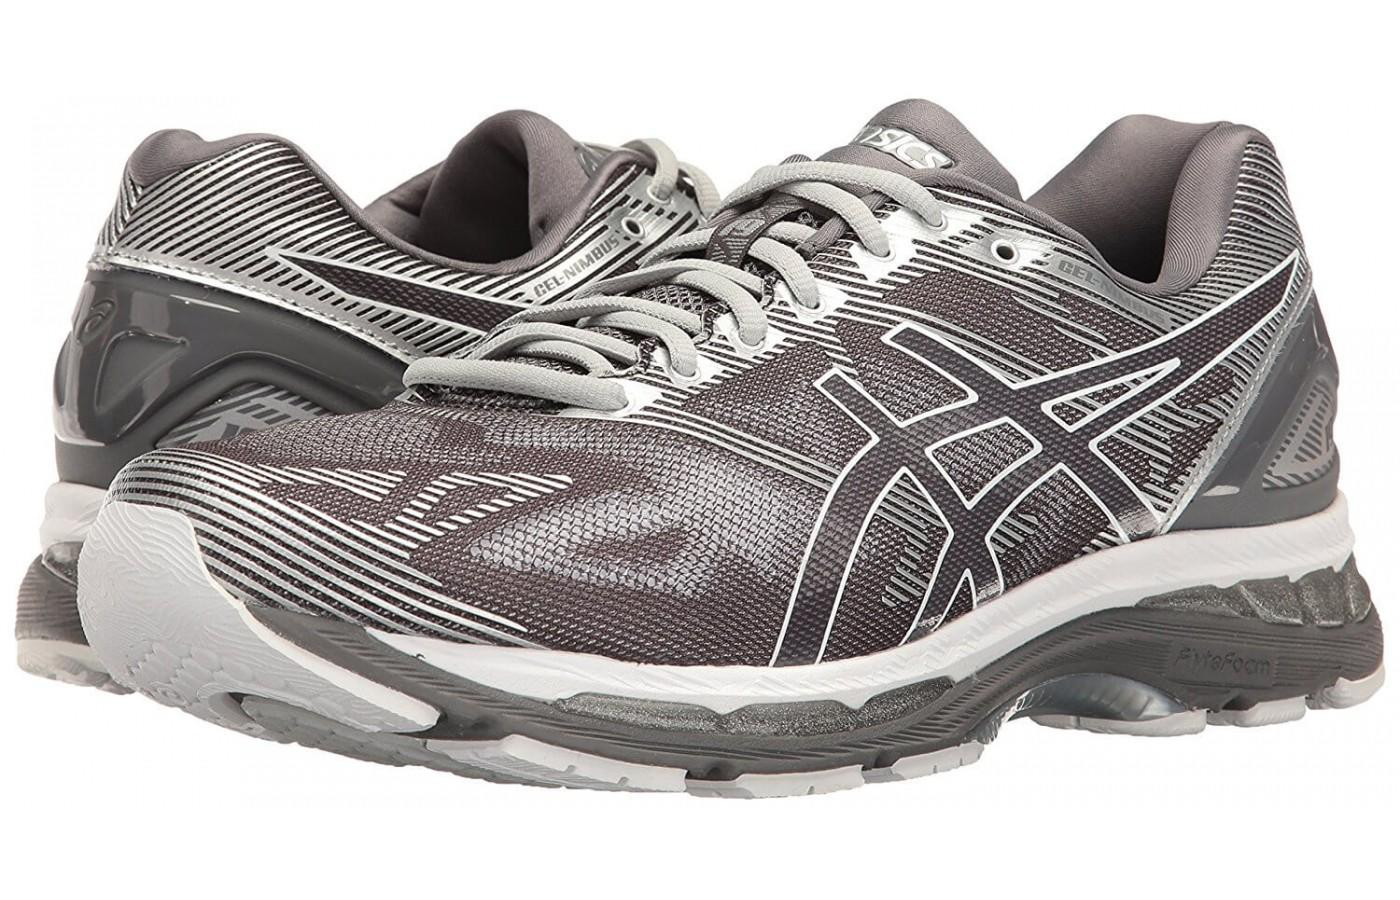 The ASICS Gel Nimbus 19 reviewed and compared.